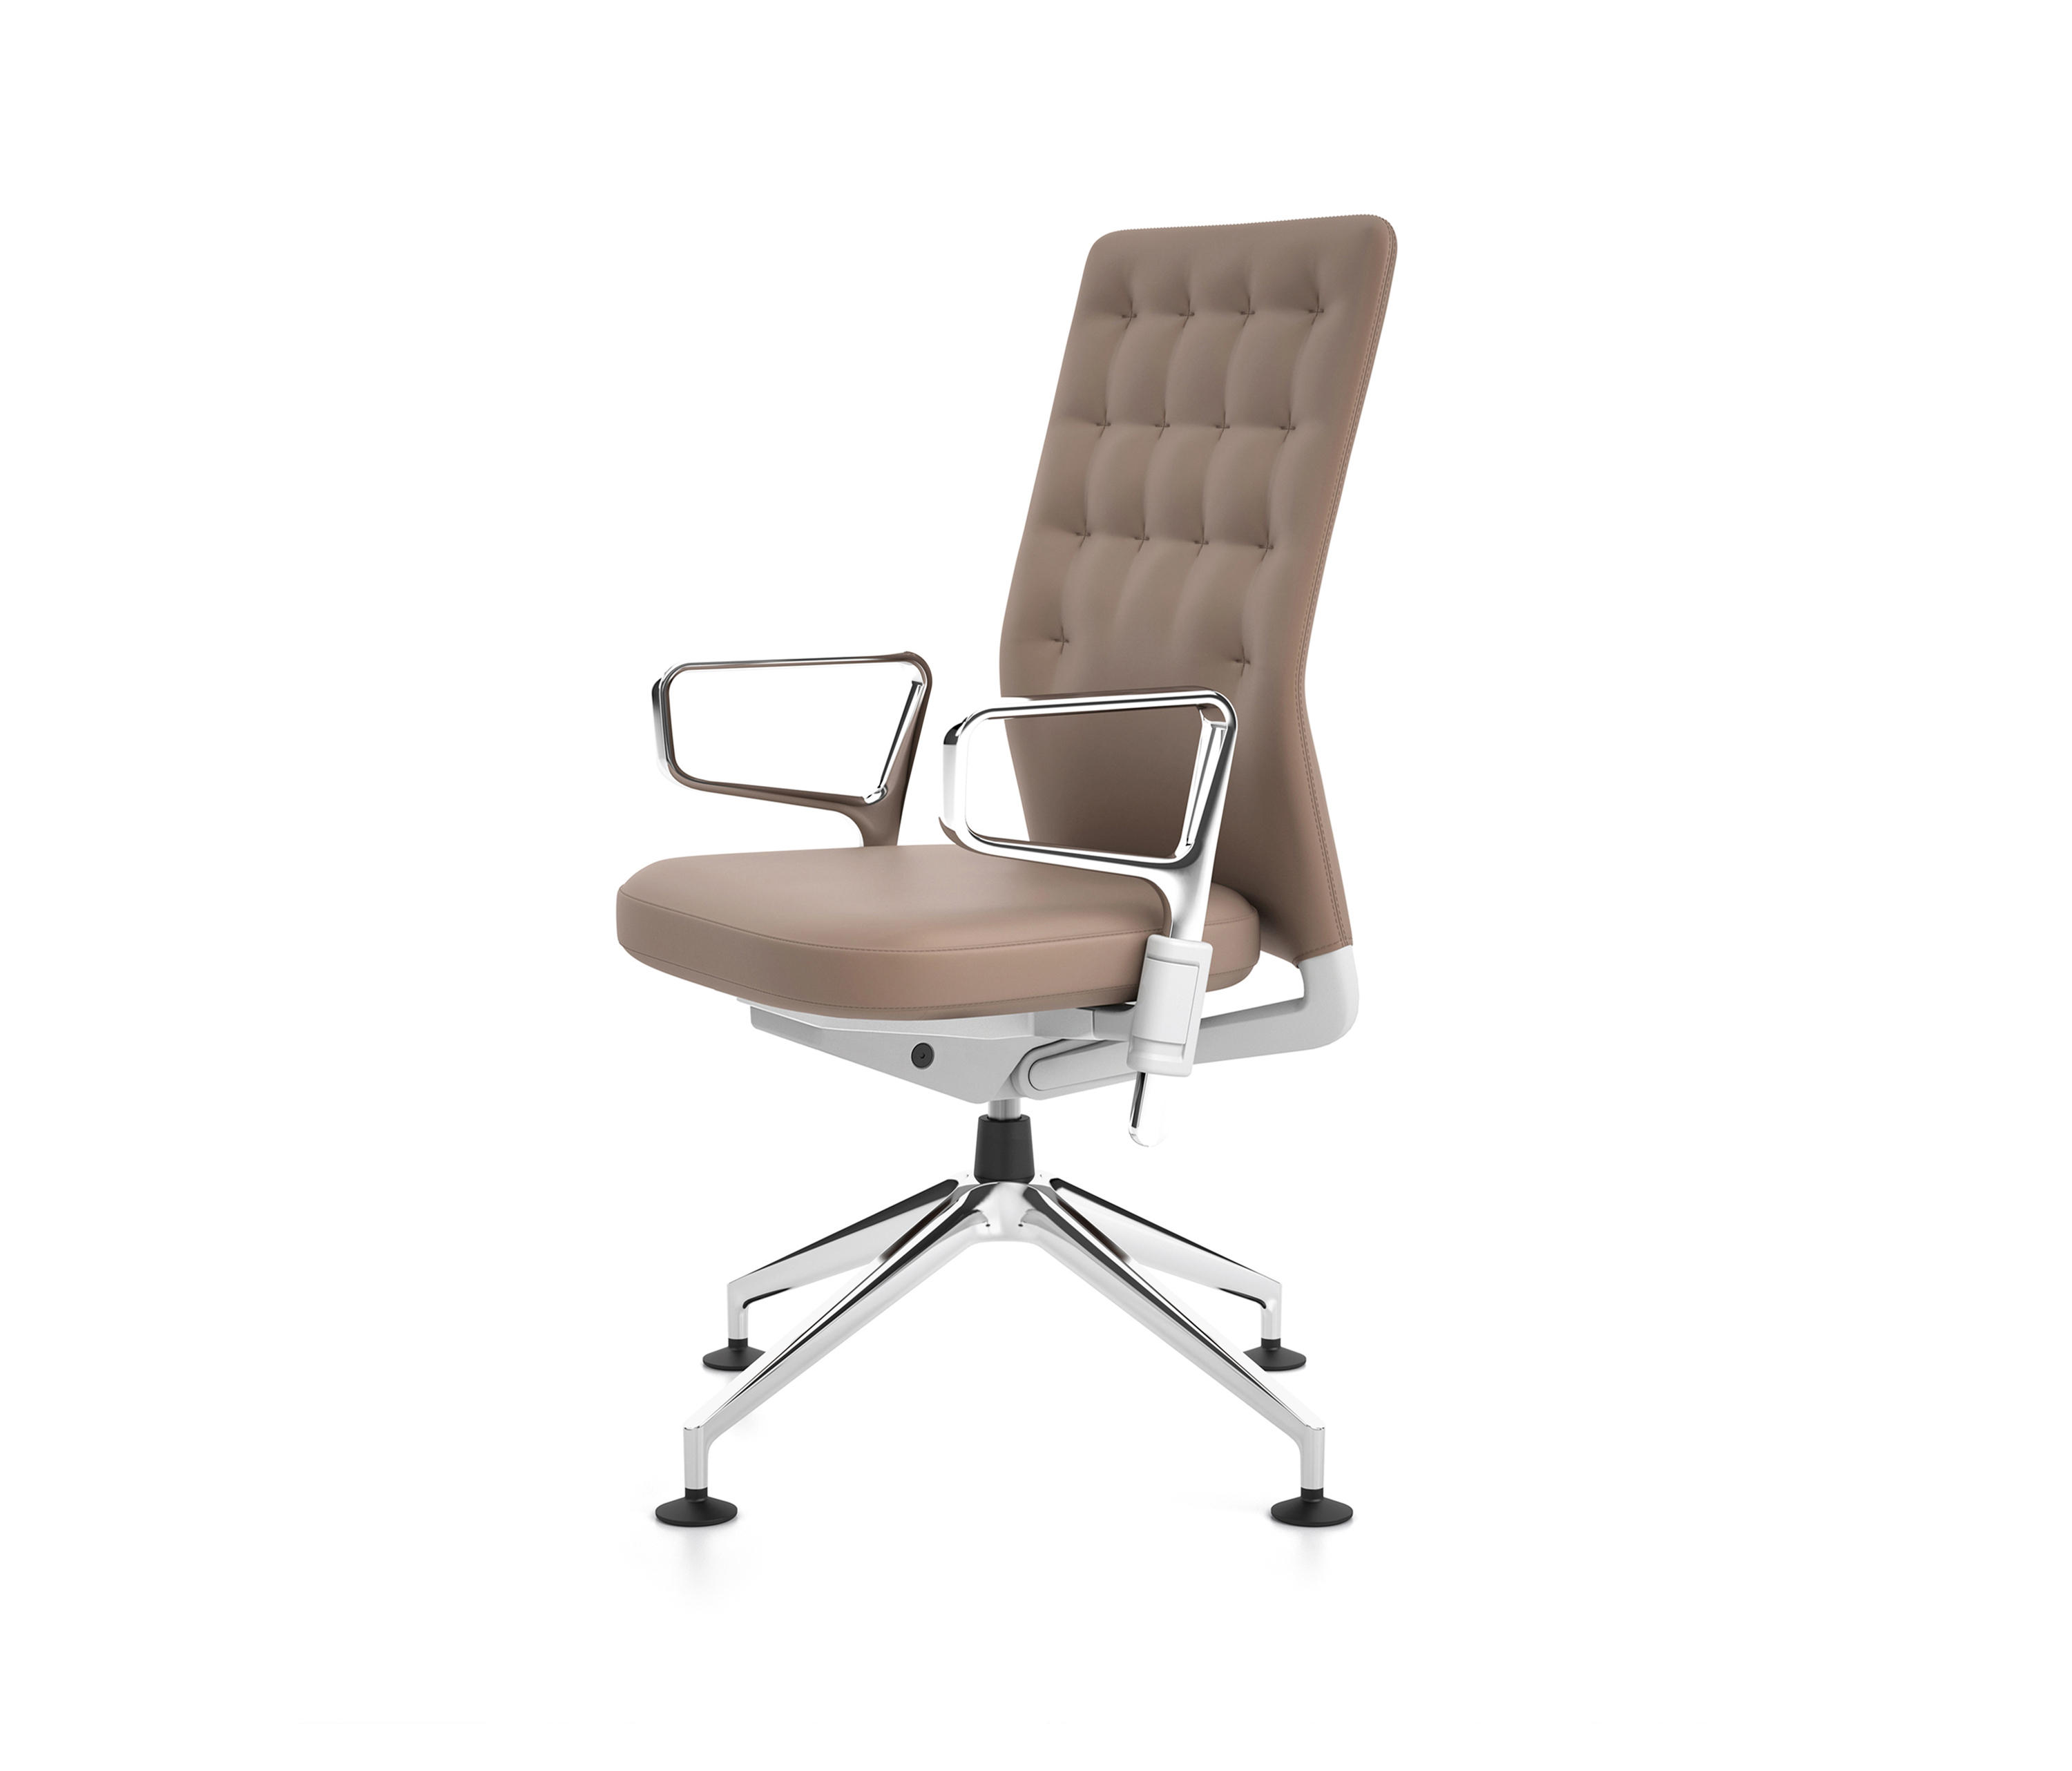 vitra ergonomic chair used covers for sale craigslist id trim task chairs from architonic